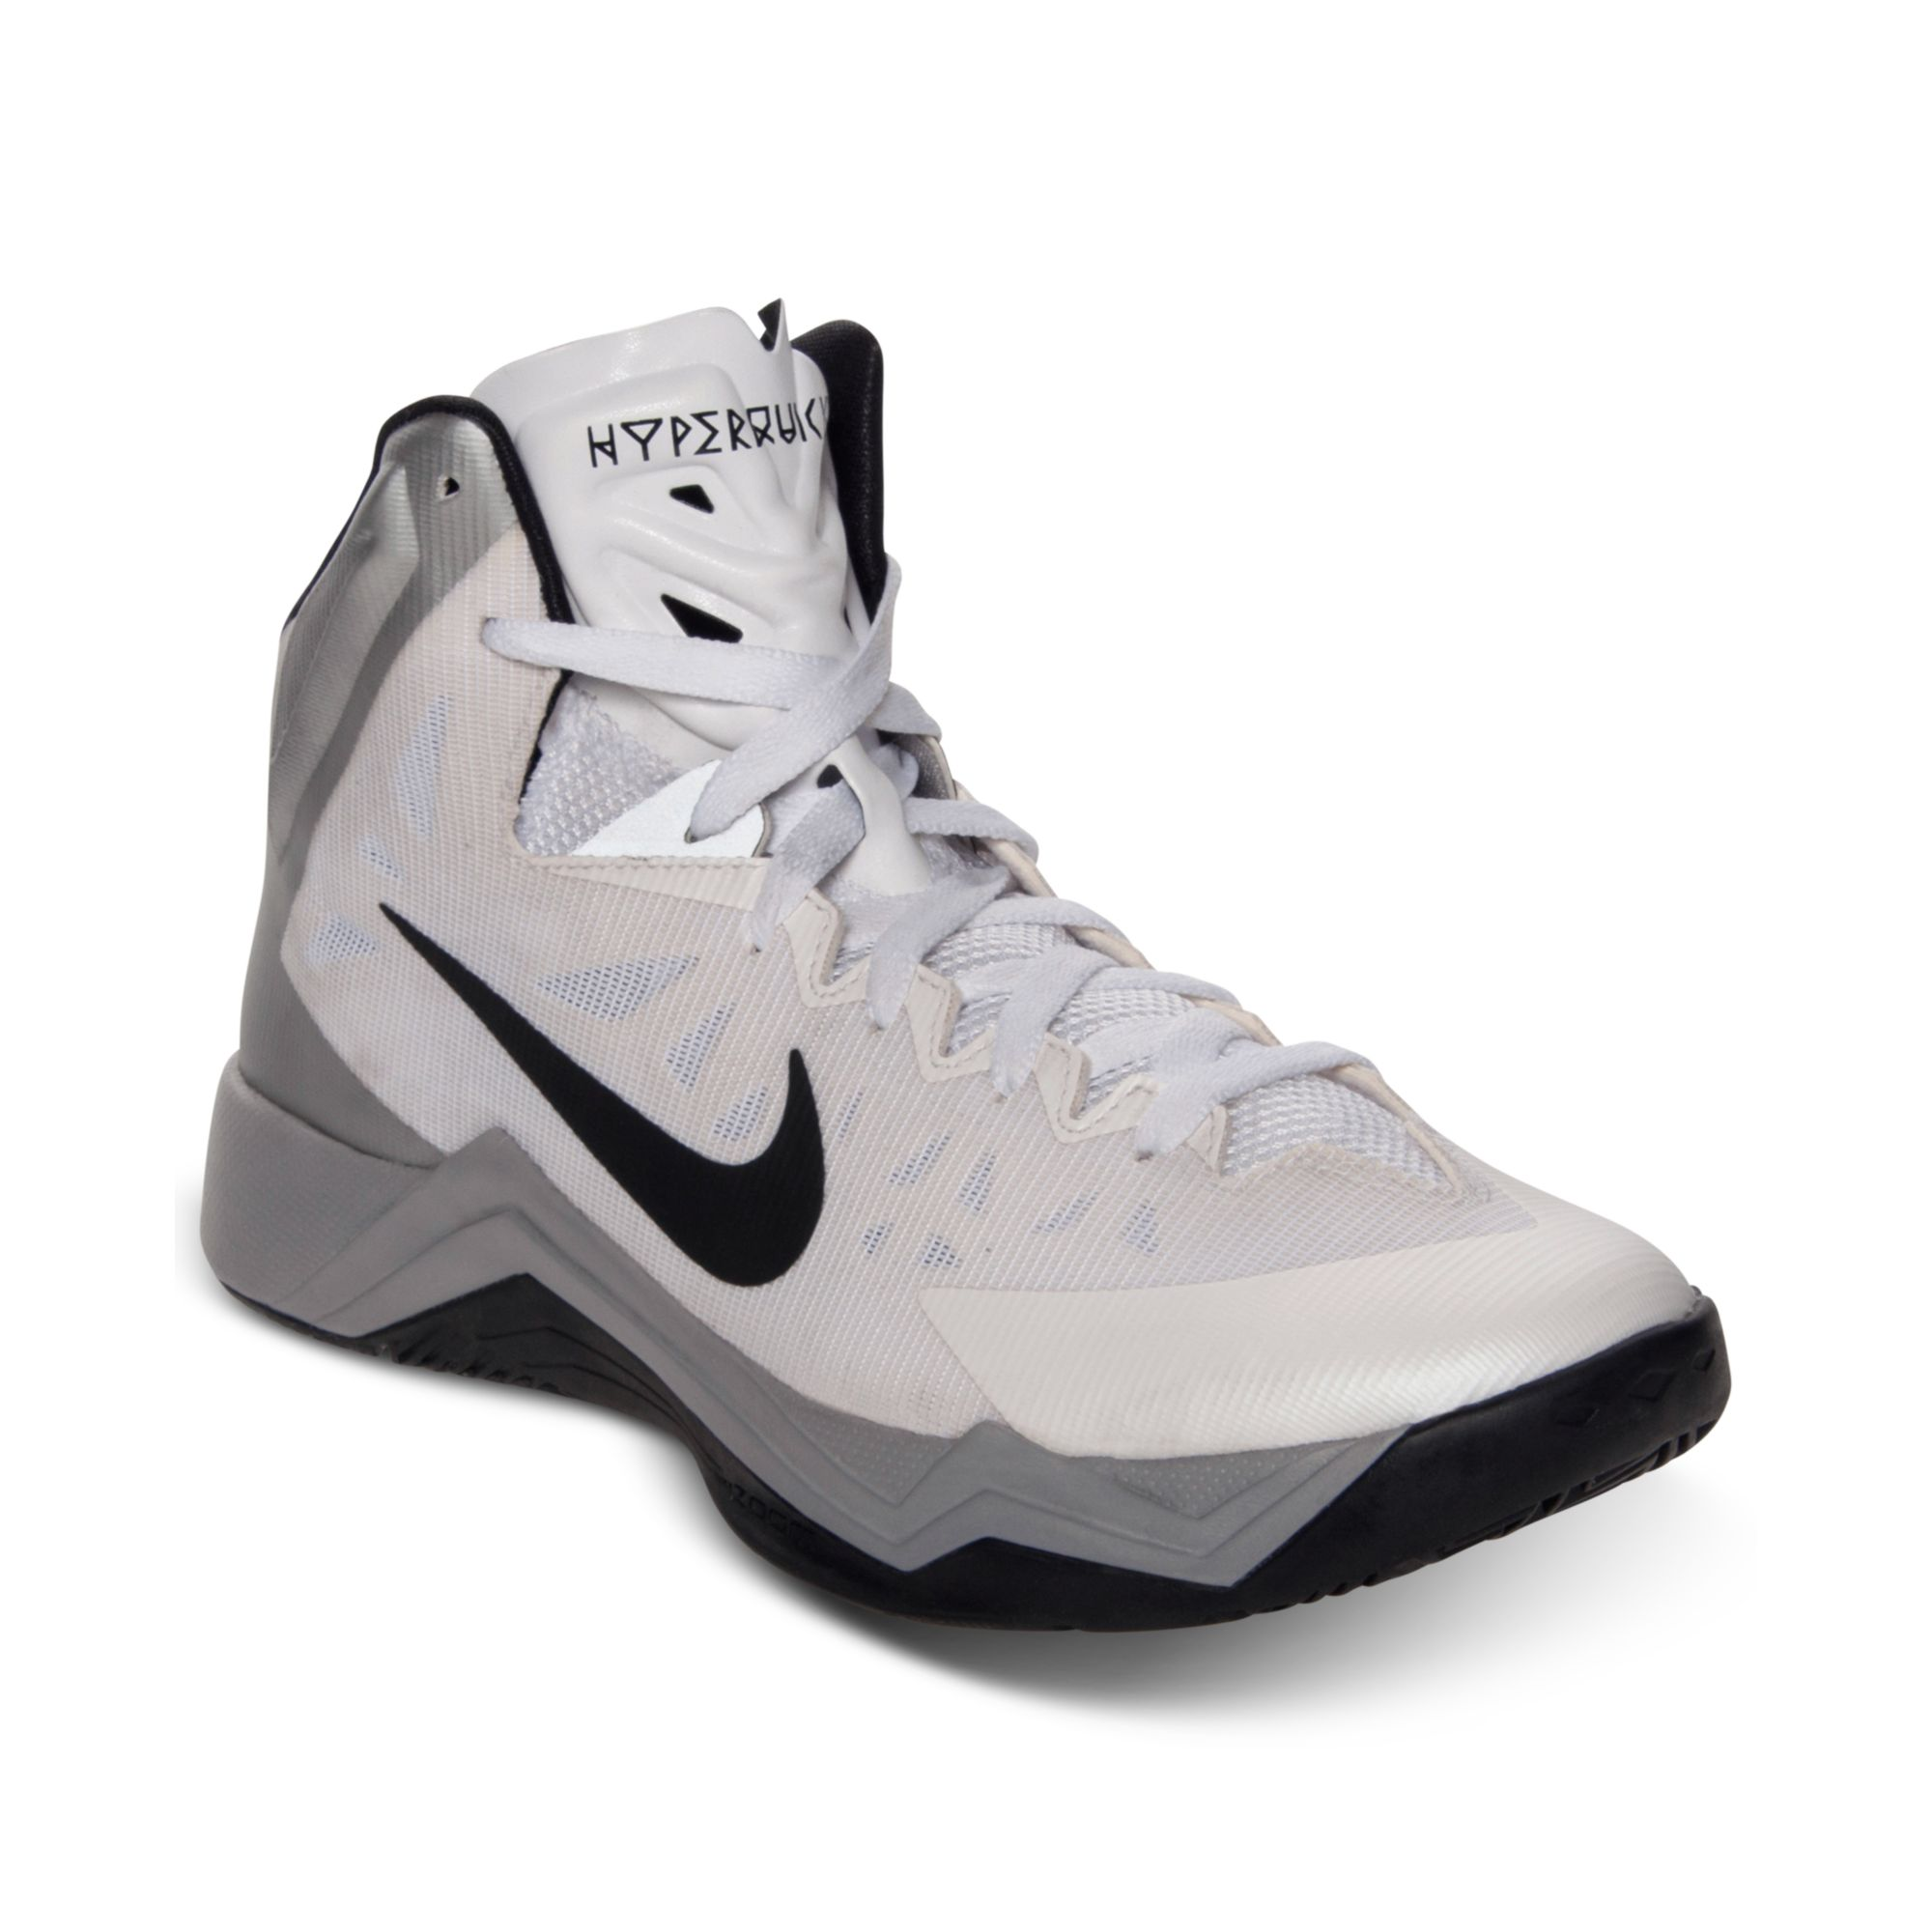 Hyperquickness Basketball Shoes